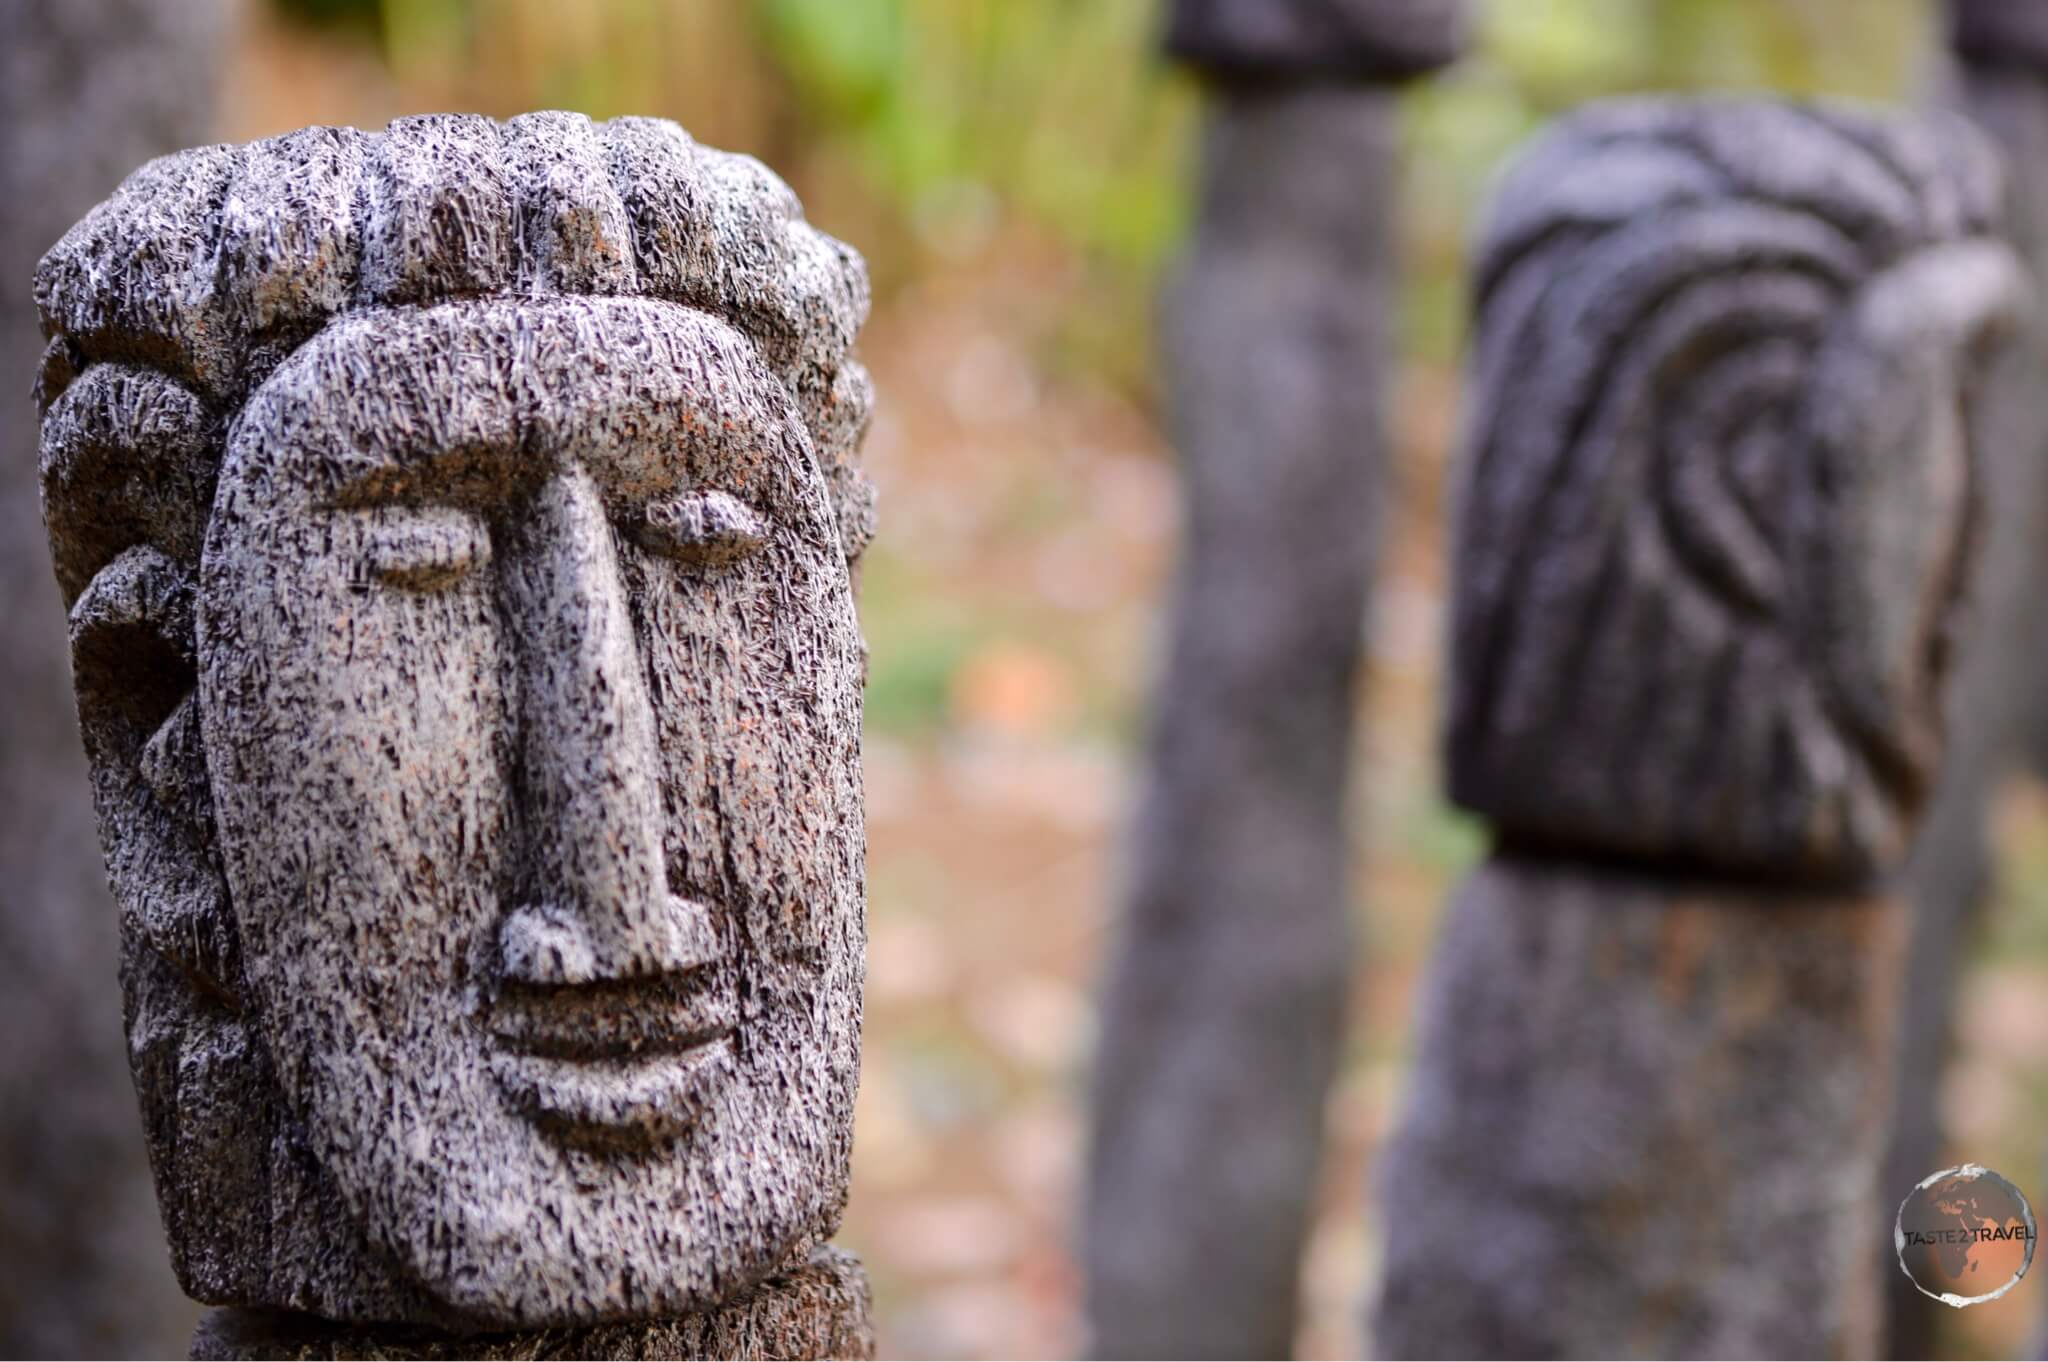 Traditional Kalinago busts carved from tree stumps.